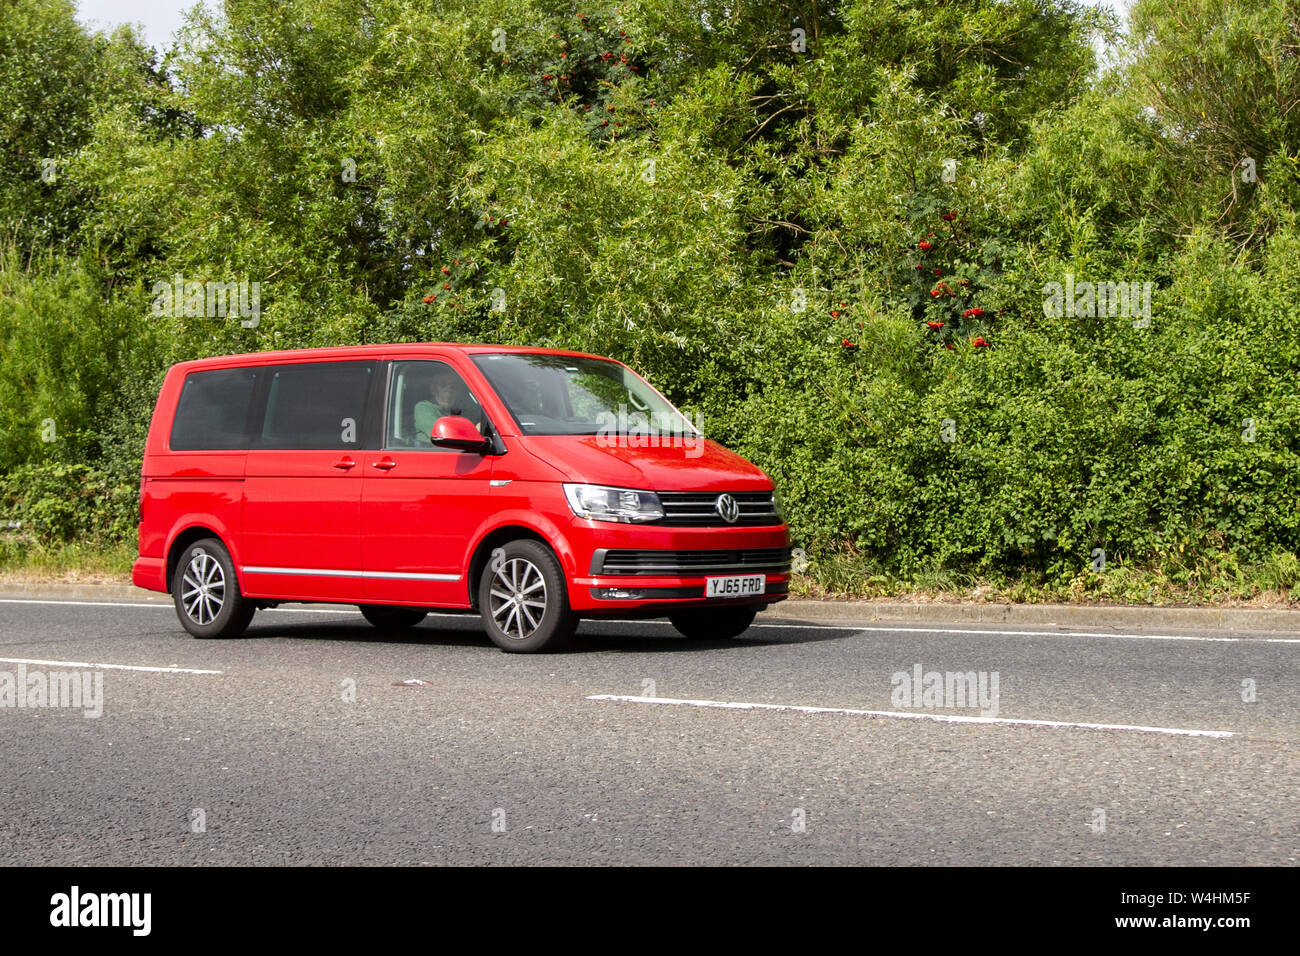 Vw Caravelle Stock Photos & Vw Caravelle Stock Images - Alamy